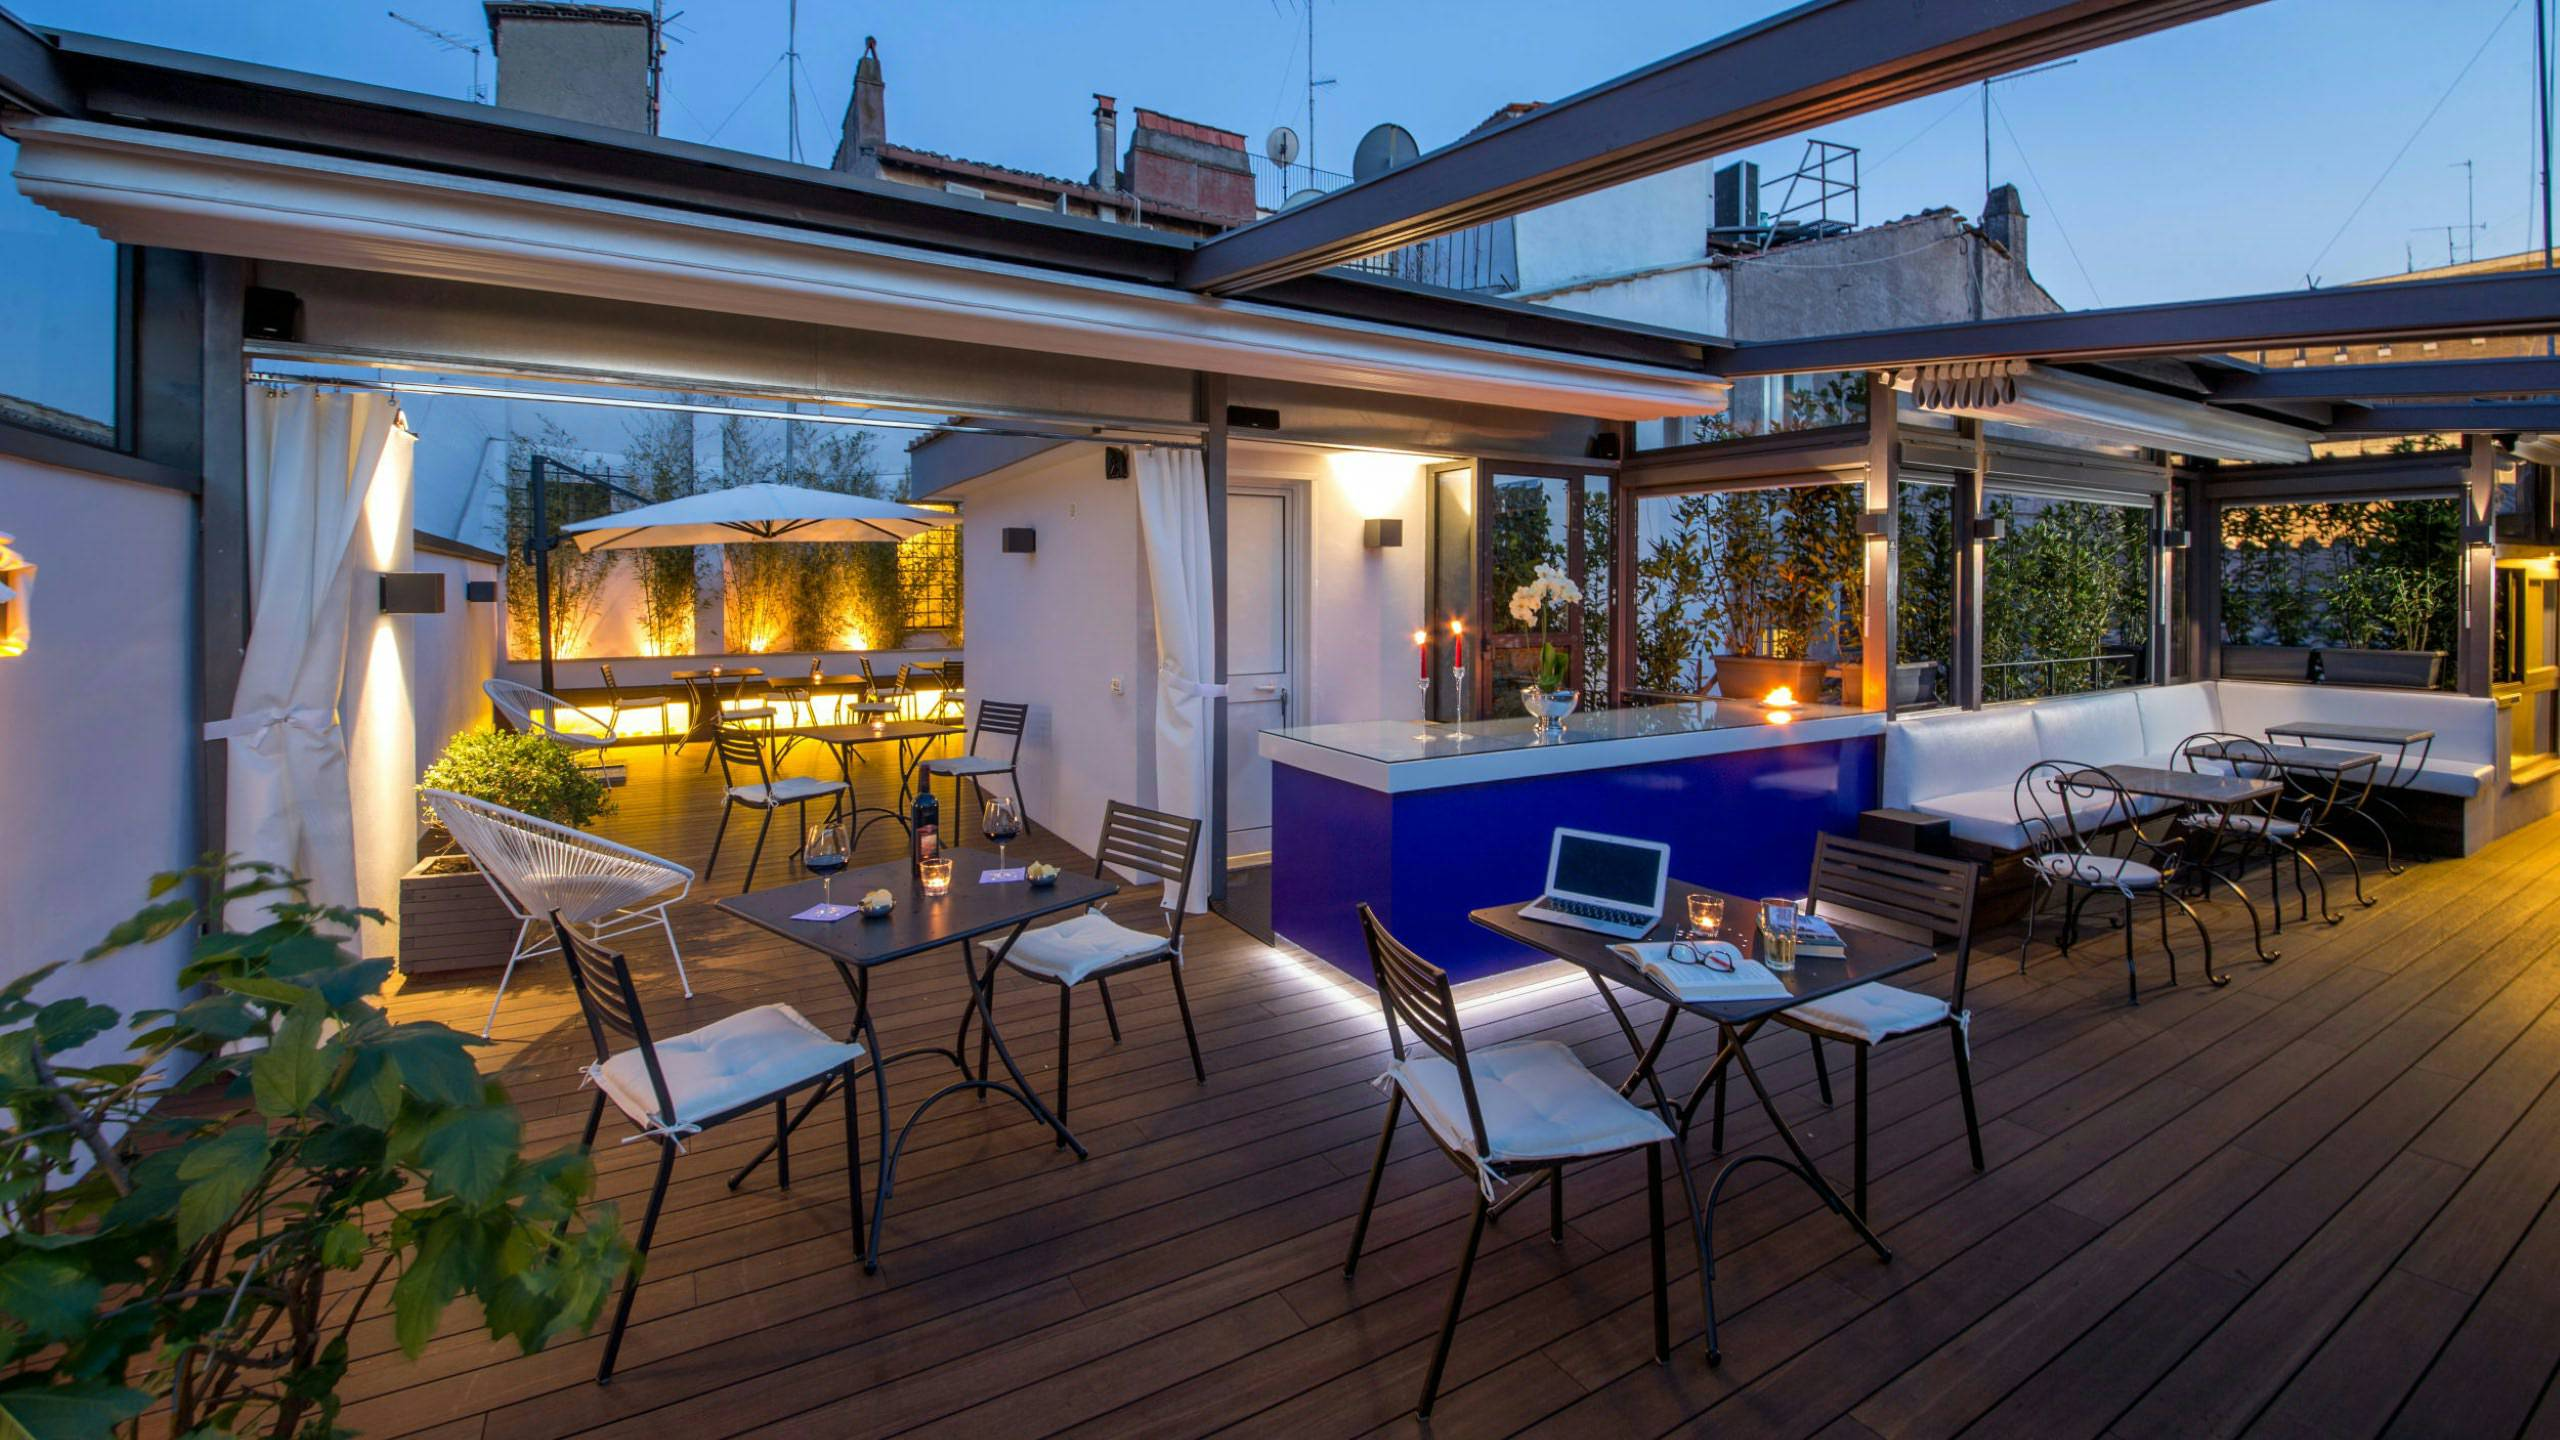 Best suites in terrazza roma photos modern home design for Top design hotels rome